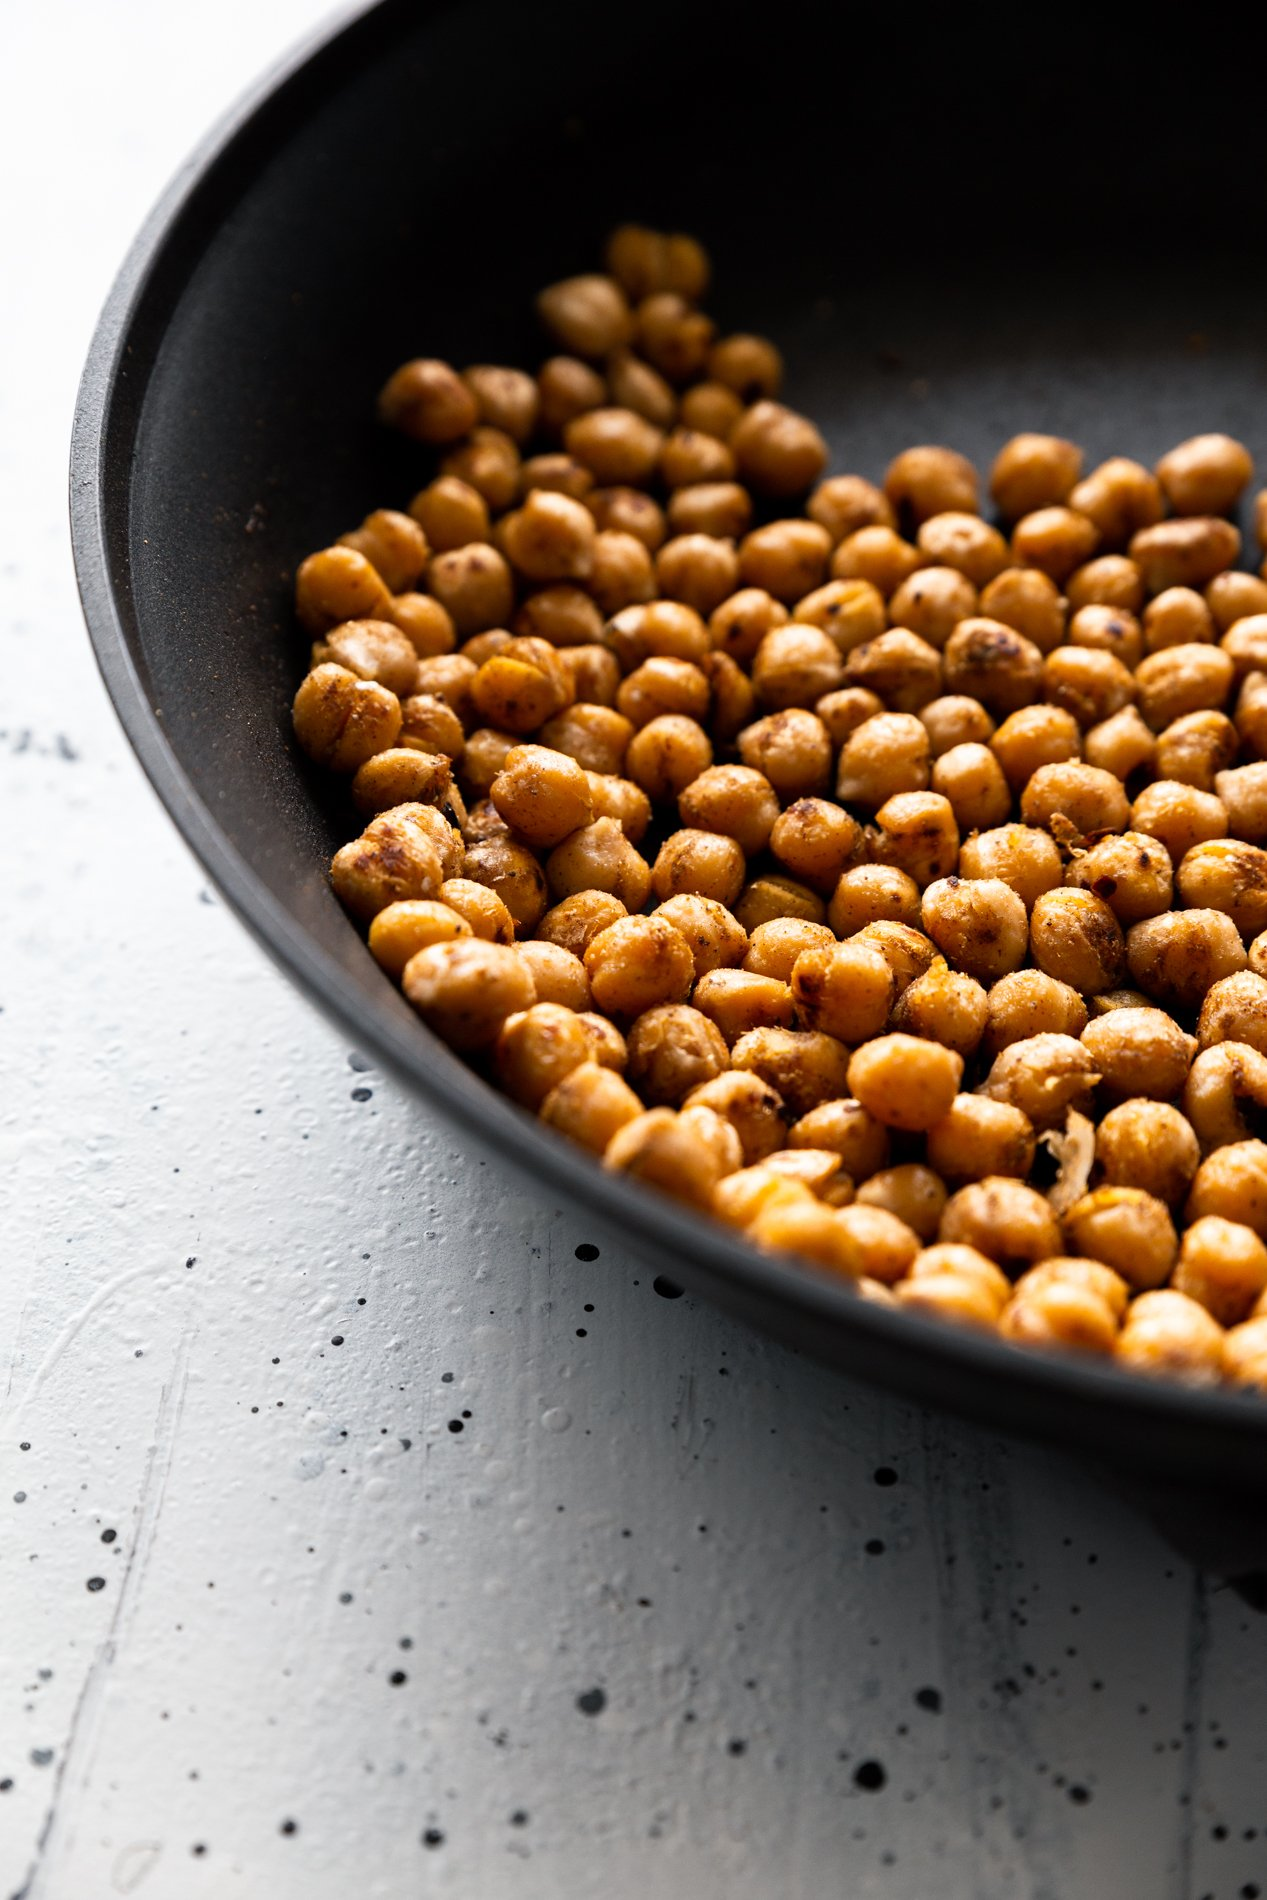 side view of a skillet with pan-roasted chickpeas in it.